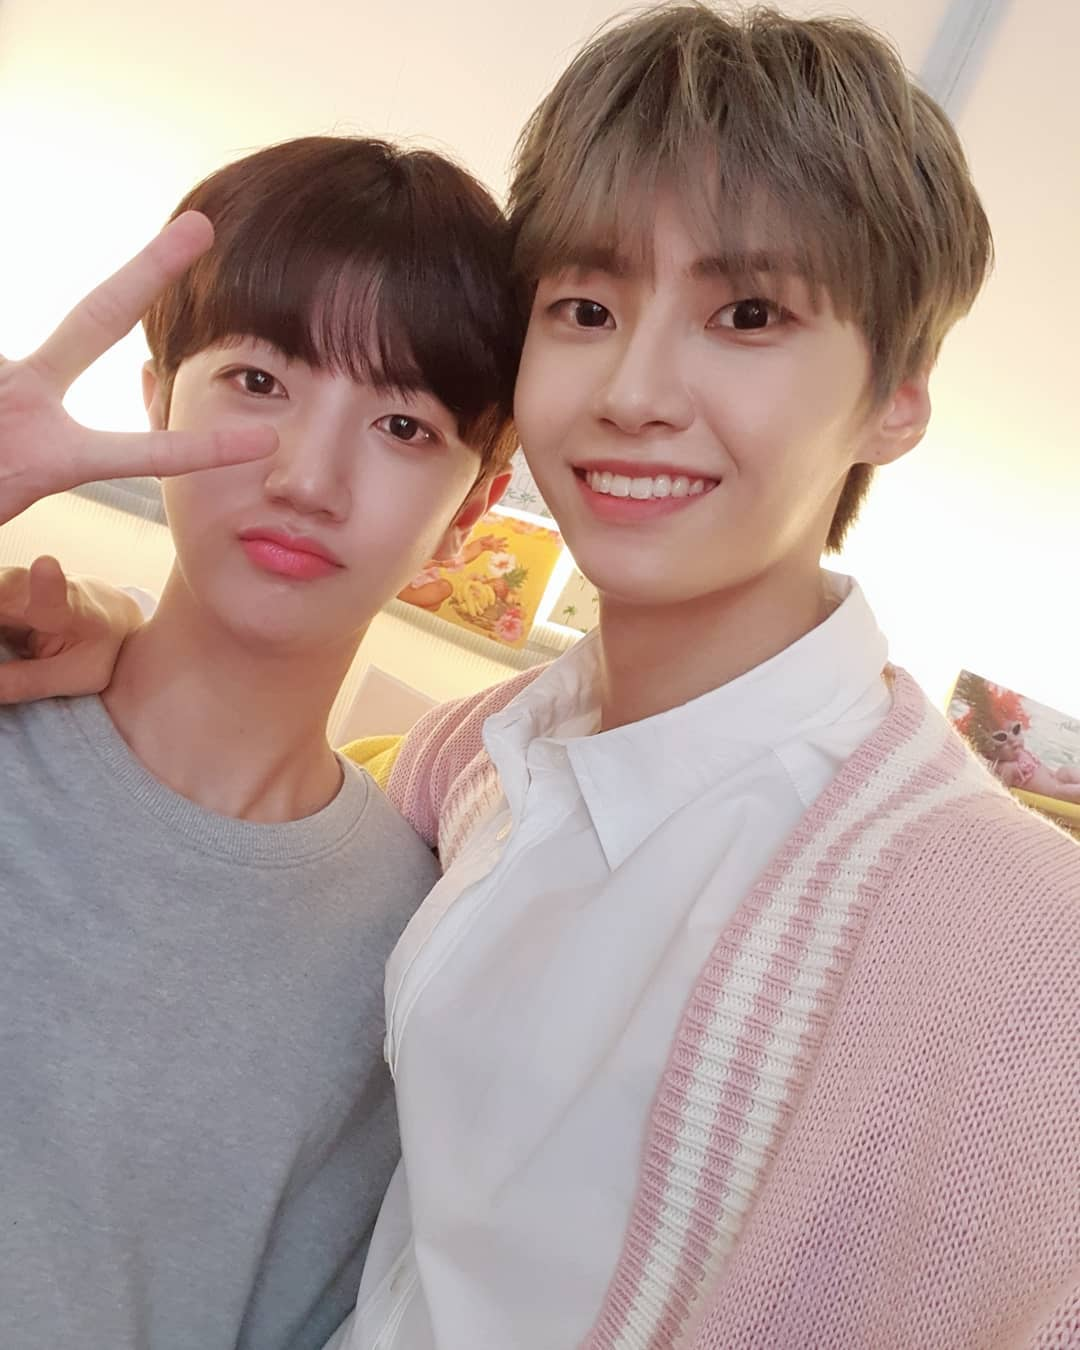 up10tion, up10tion profile, up10tion members, up10tion age, up10tion age, up10tion height, up10tion leader, up10tion facts, up10tion selfie, up10tion lee jinhyuk, lee jinhyuk,